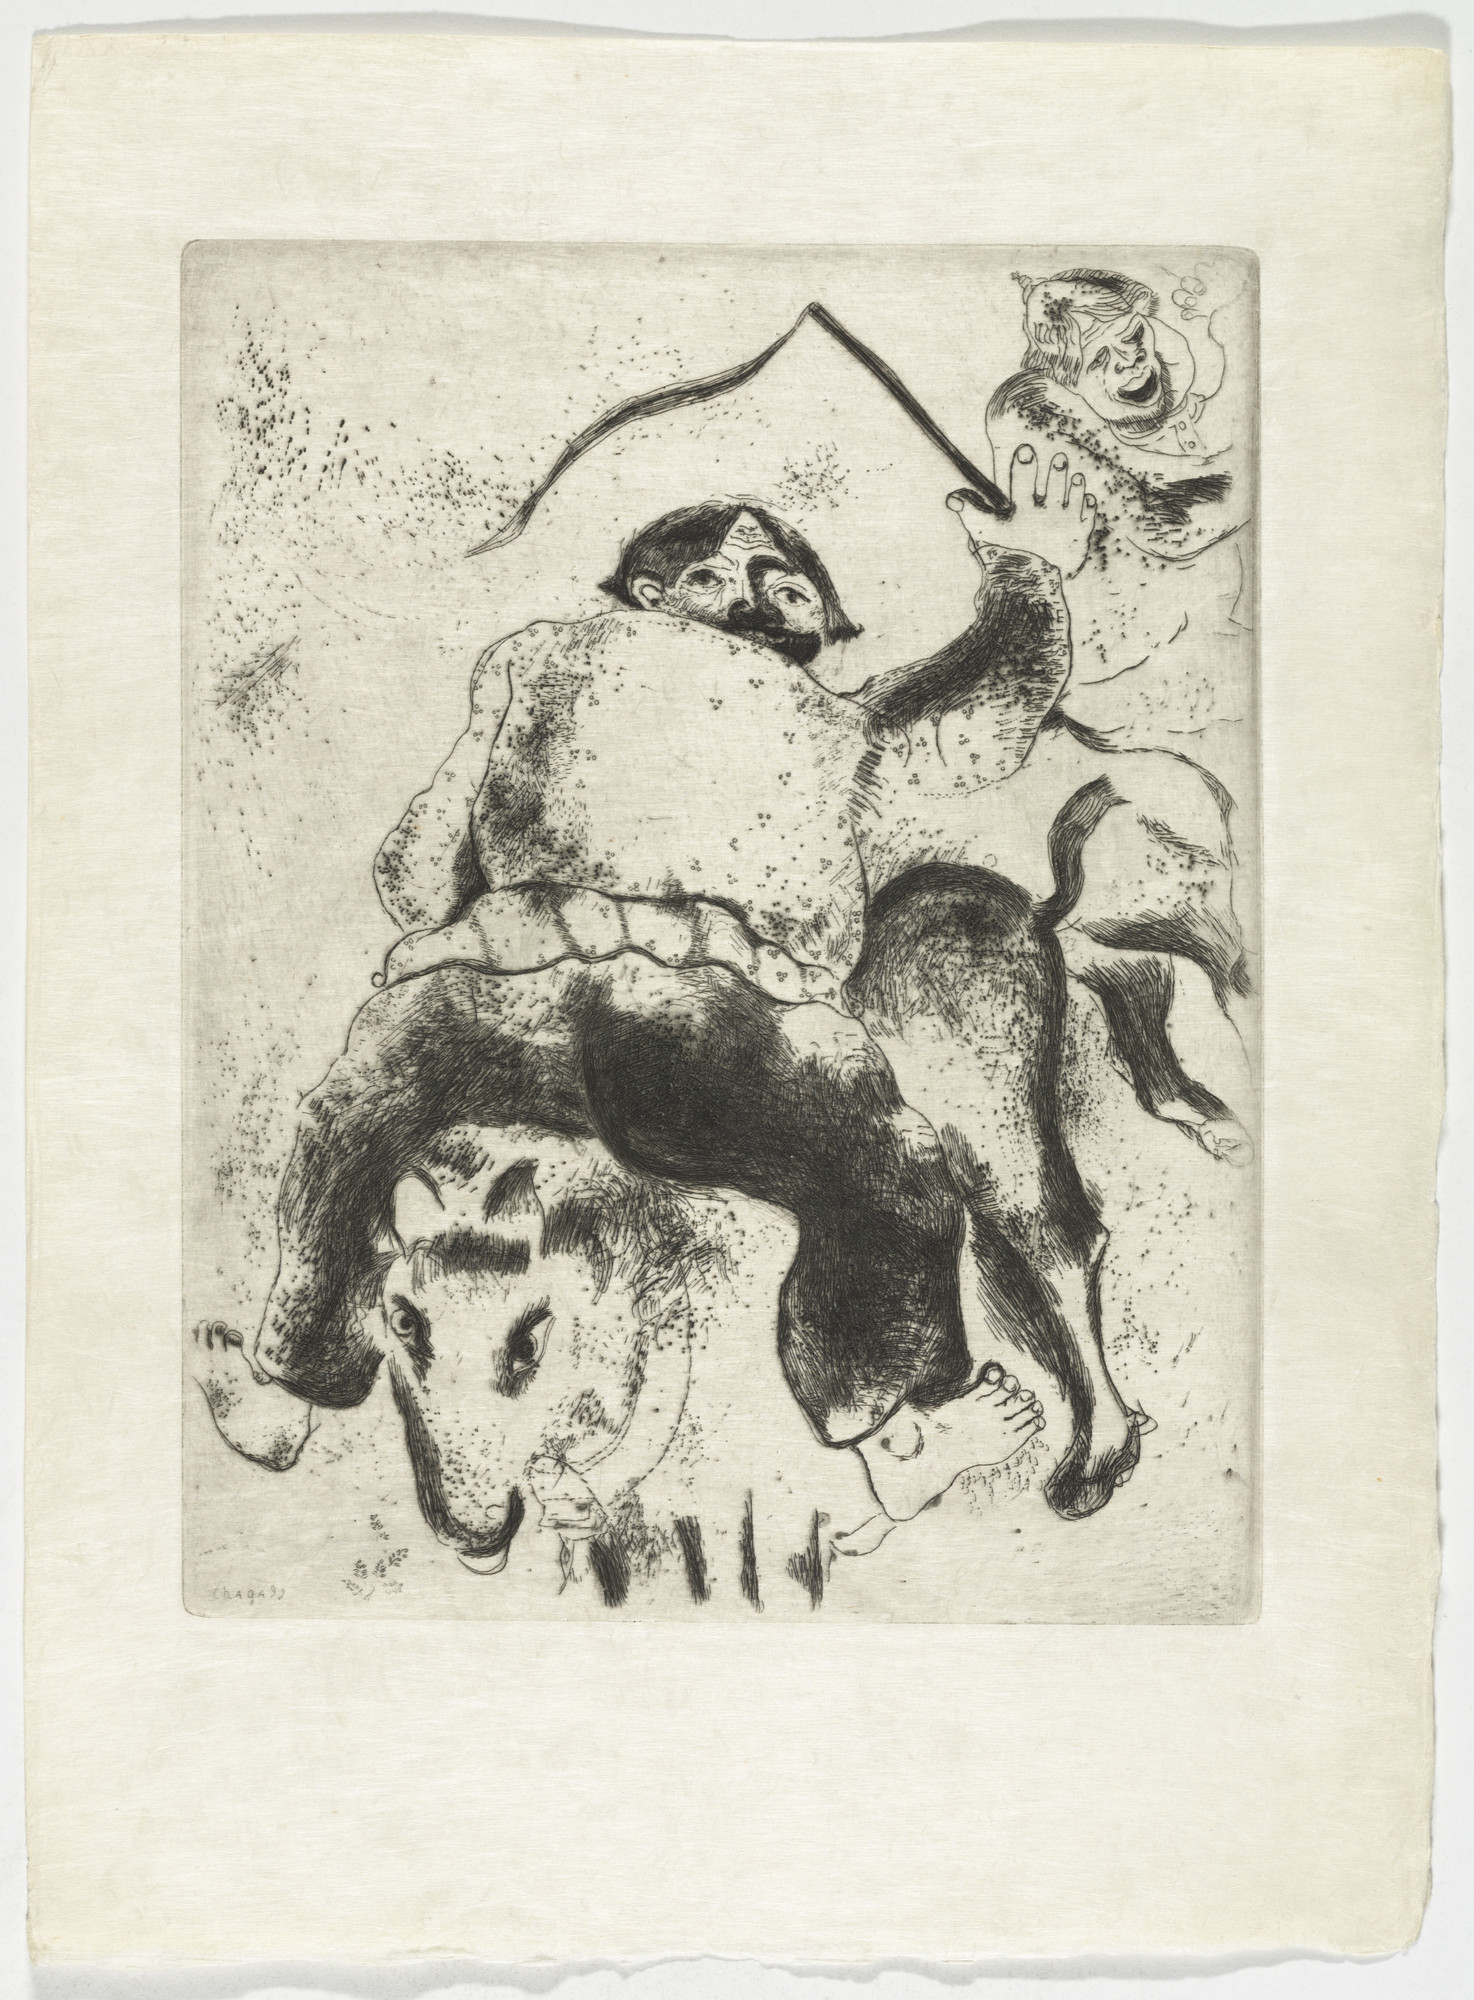 Marc Chagall. Father Mitiaï and Father Miniaï (Le Père Mitiaï et le père miniaï), plate XXIX (supplementary suite) from Les Âmes mortes. 1923-48